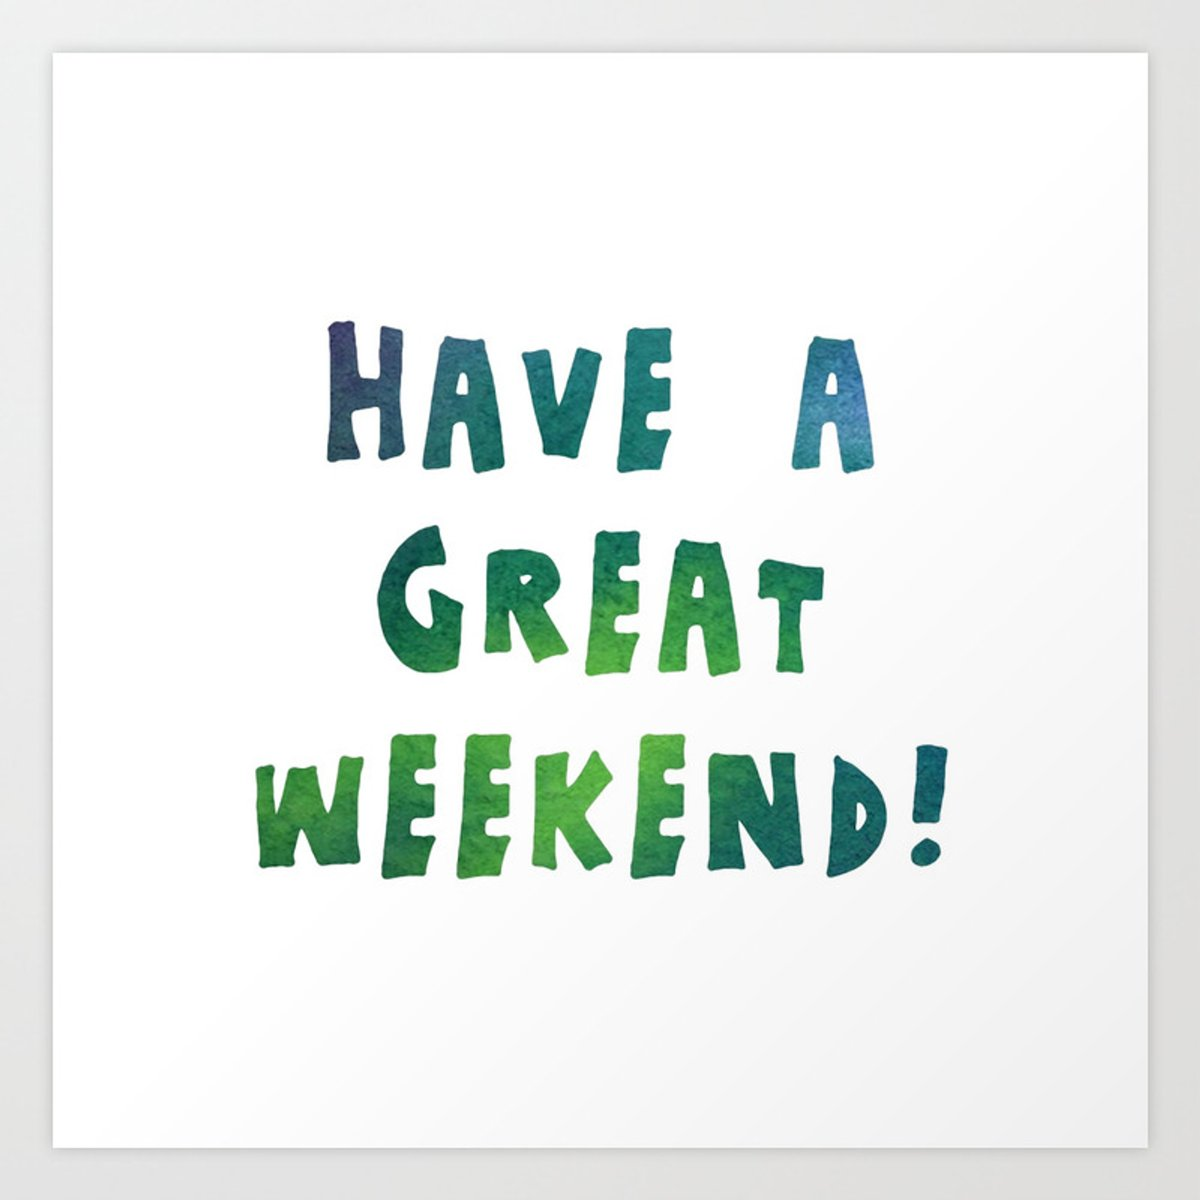 HAVE A GREAT WEEKEND!   http://www.ostopm.com   #ostopm #propertymanager #brevard #propertymanagement #melbourne #pm #realestate #realtor #realtors #forrent #titusville #florida #rental #rentals #condo #palmbeach #rentalproperty #stressfree #spacecoastpic.twitter.com/MvhHAzCiwL